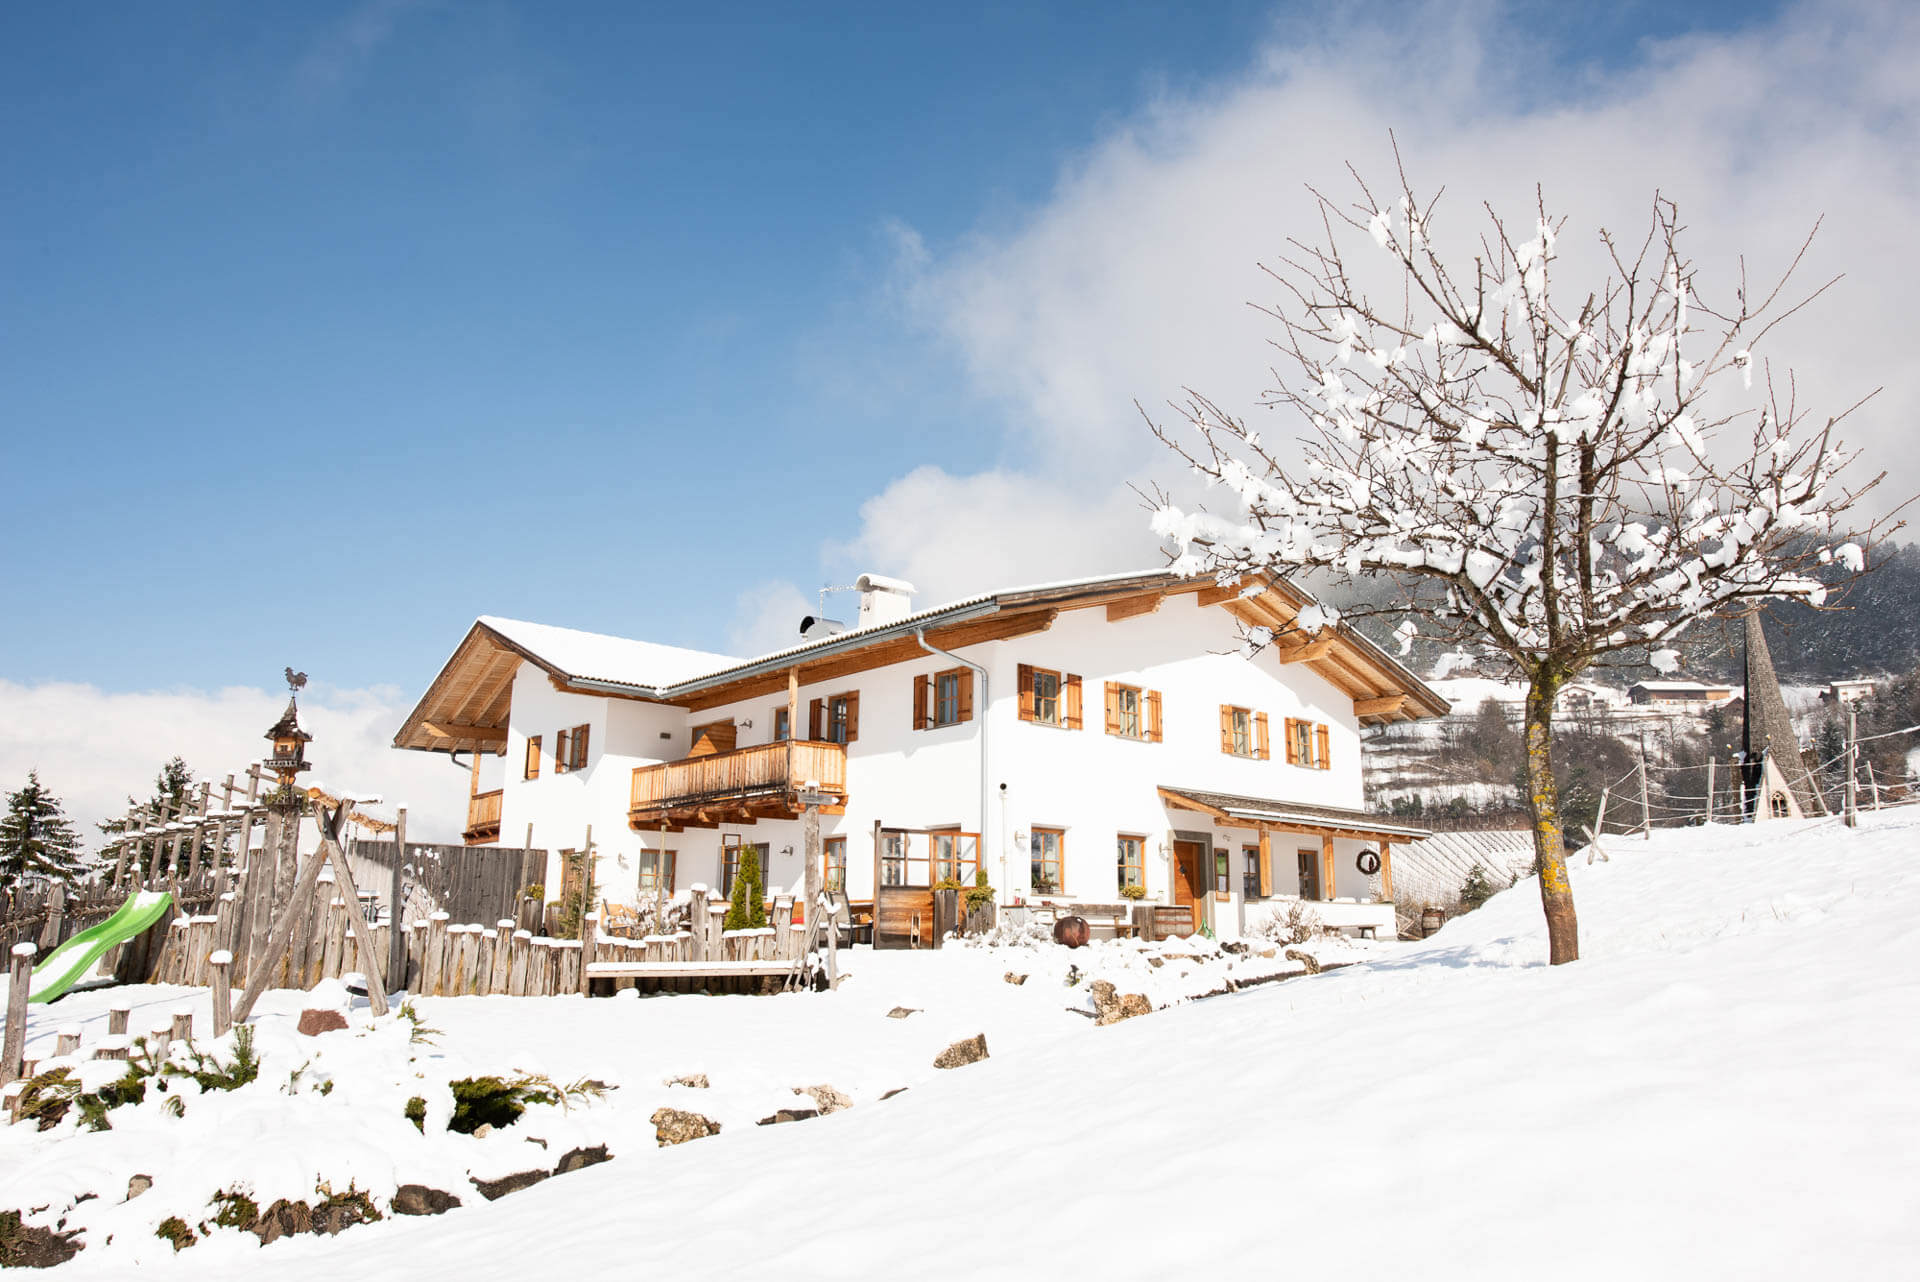 The Örtlhof in winter - farm holidays with sauna